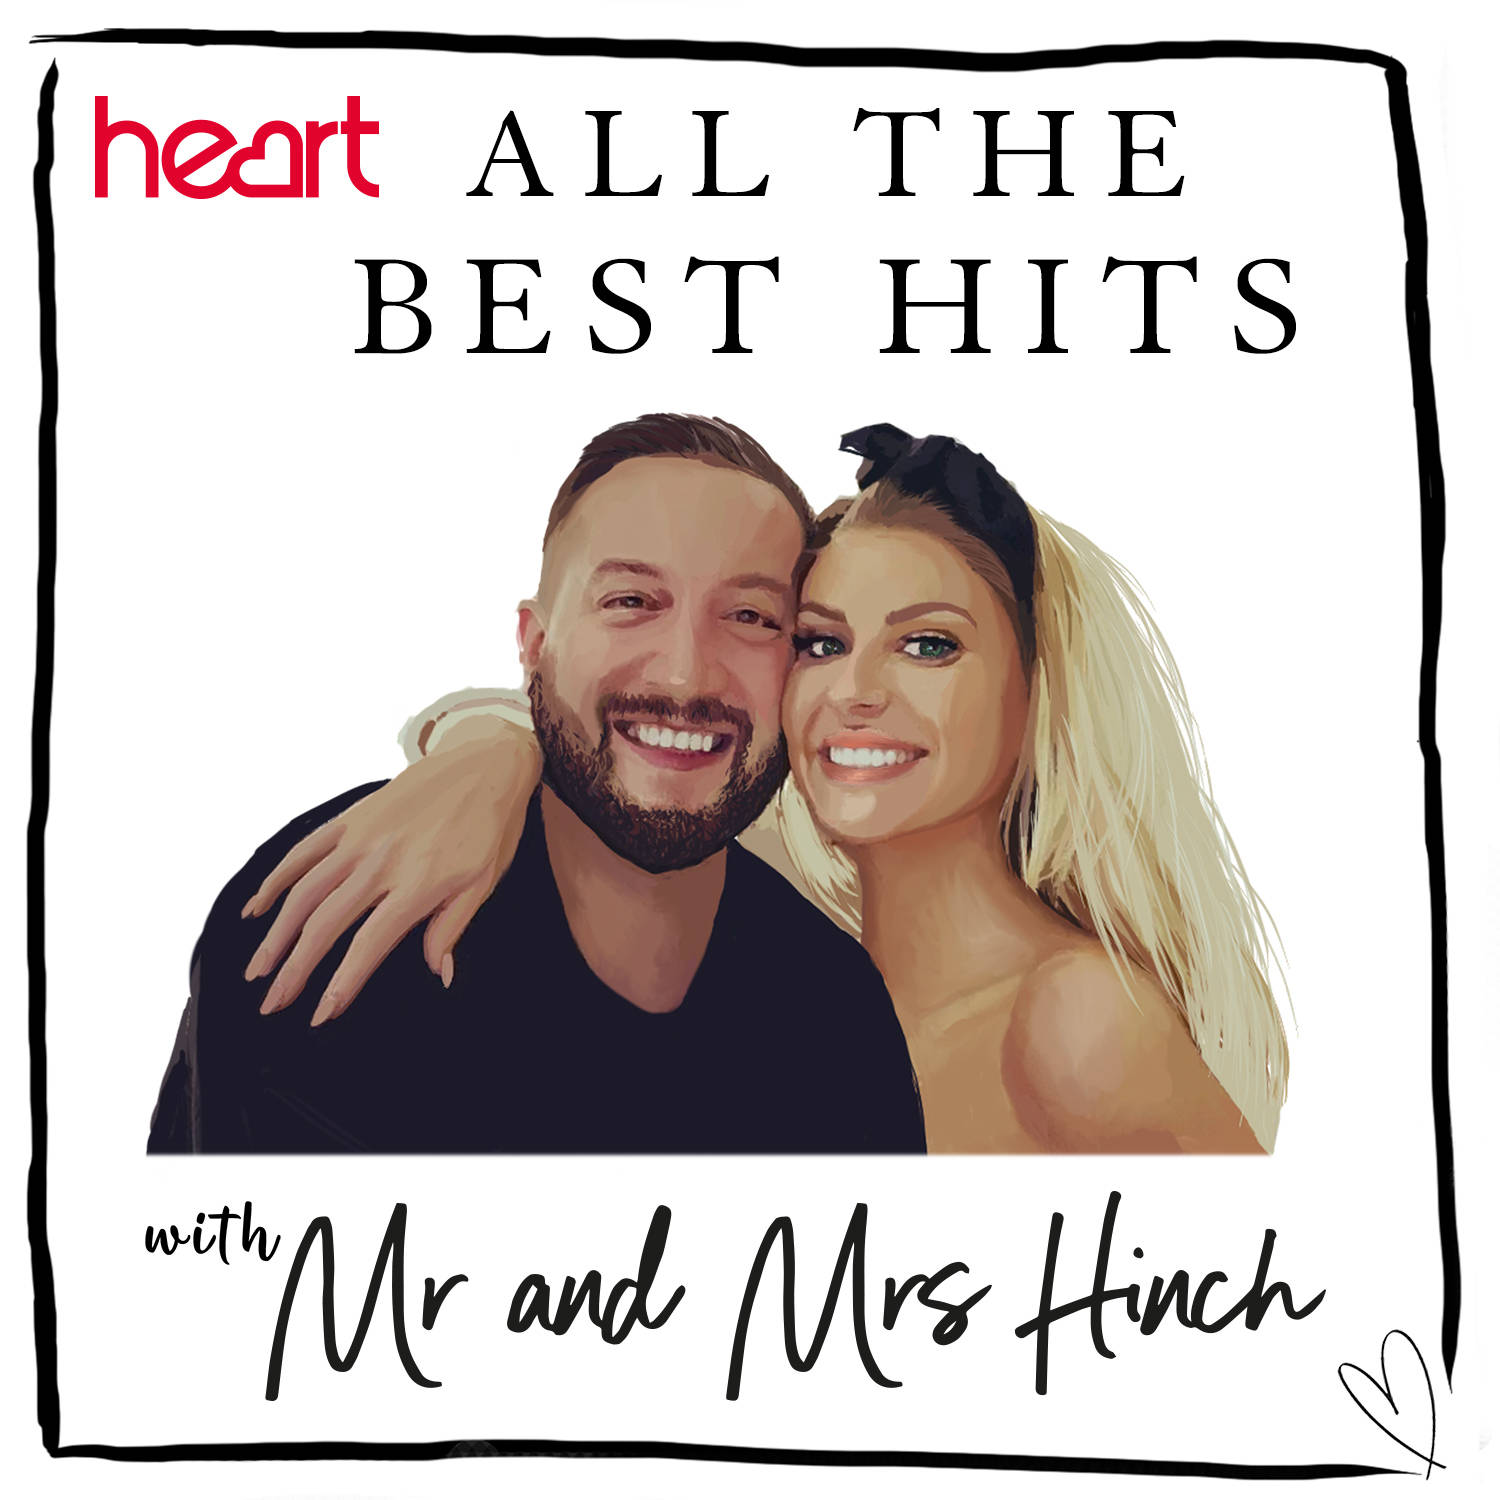 All The Best Hits with Mr and Mrs Hinch image